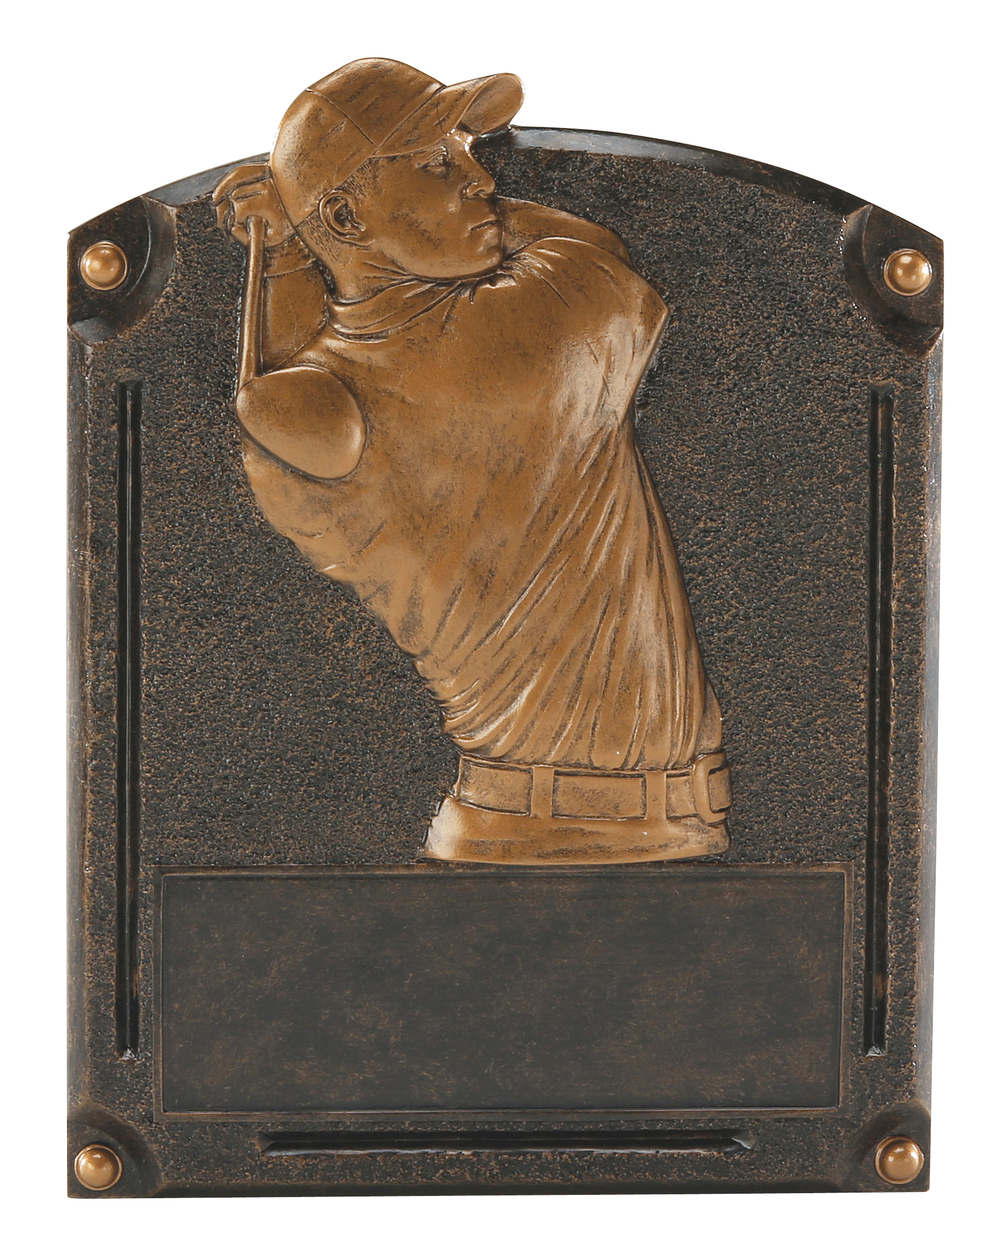 "Legends of Fame Series - Golf, Male 54721GS - 8"" tall x 6"" wide Can stand up or hang on wall Price = $18"